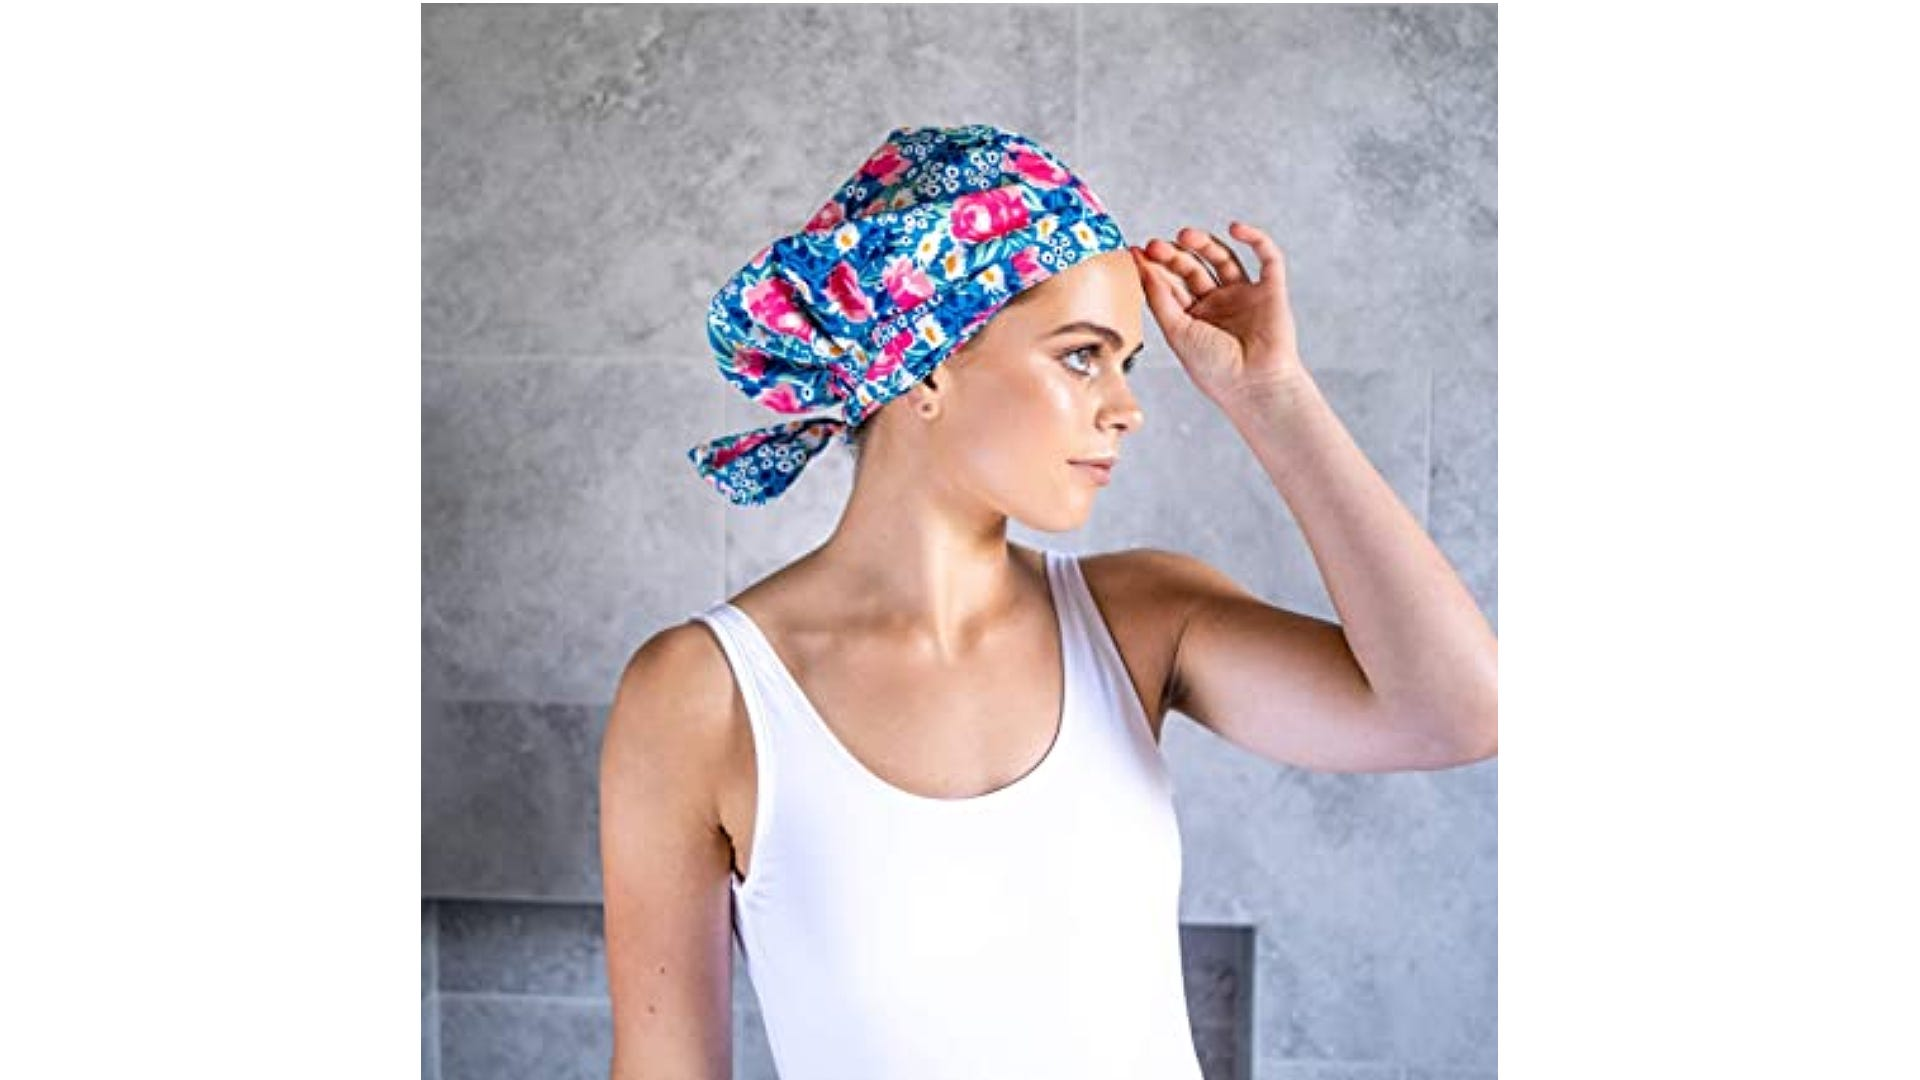 woman wearing blue and pink floral shower cap with tie